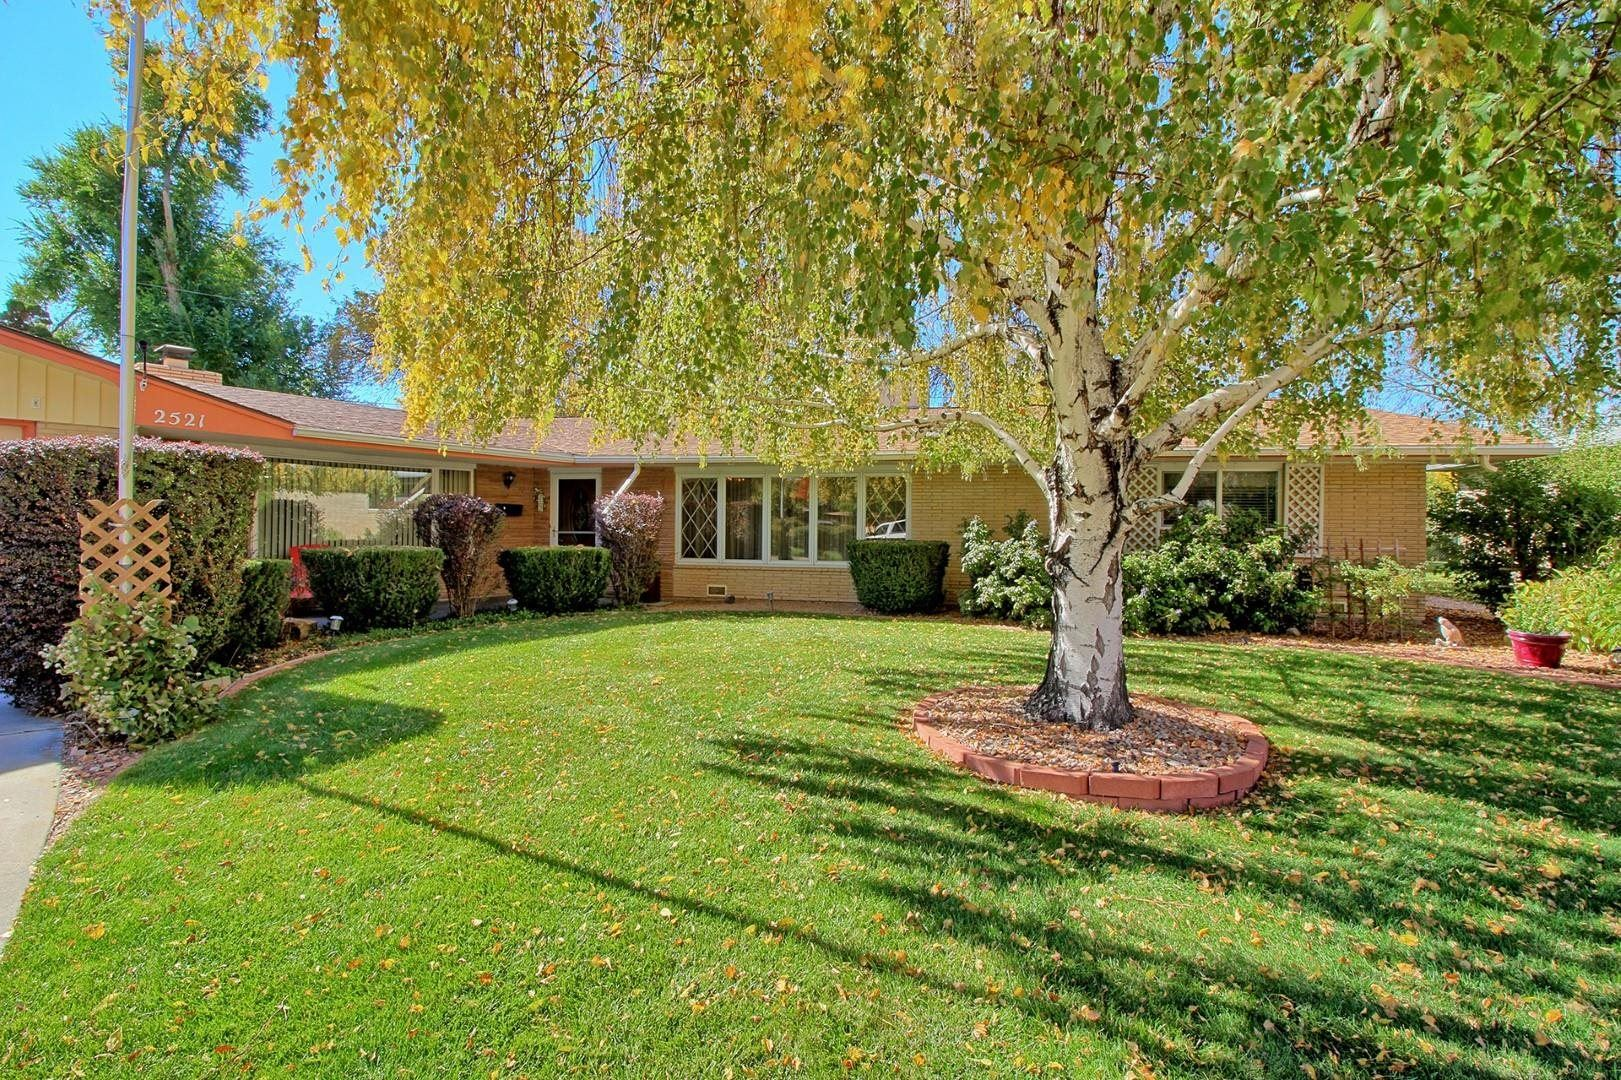 Photo of 2521 Mayfair Drive, Grand Junction, CO 81501 (MLS # 20215743)